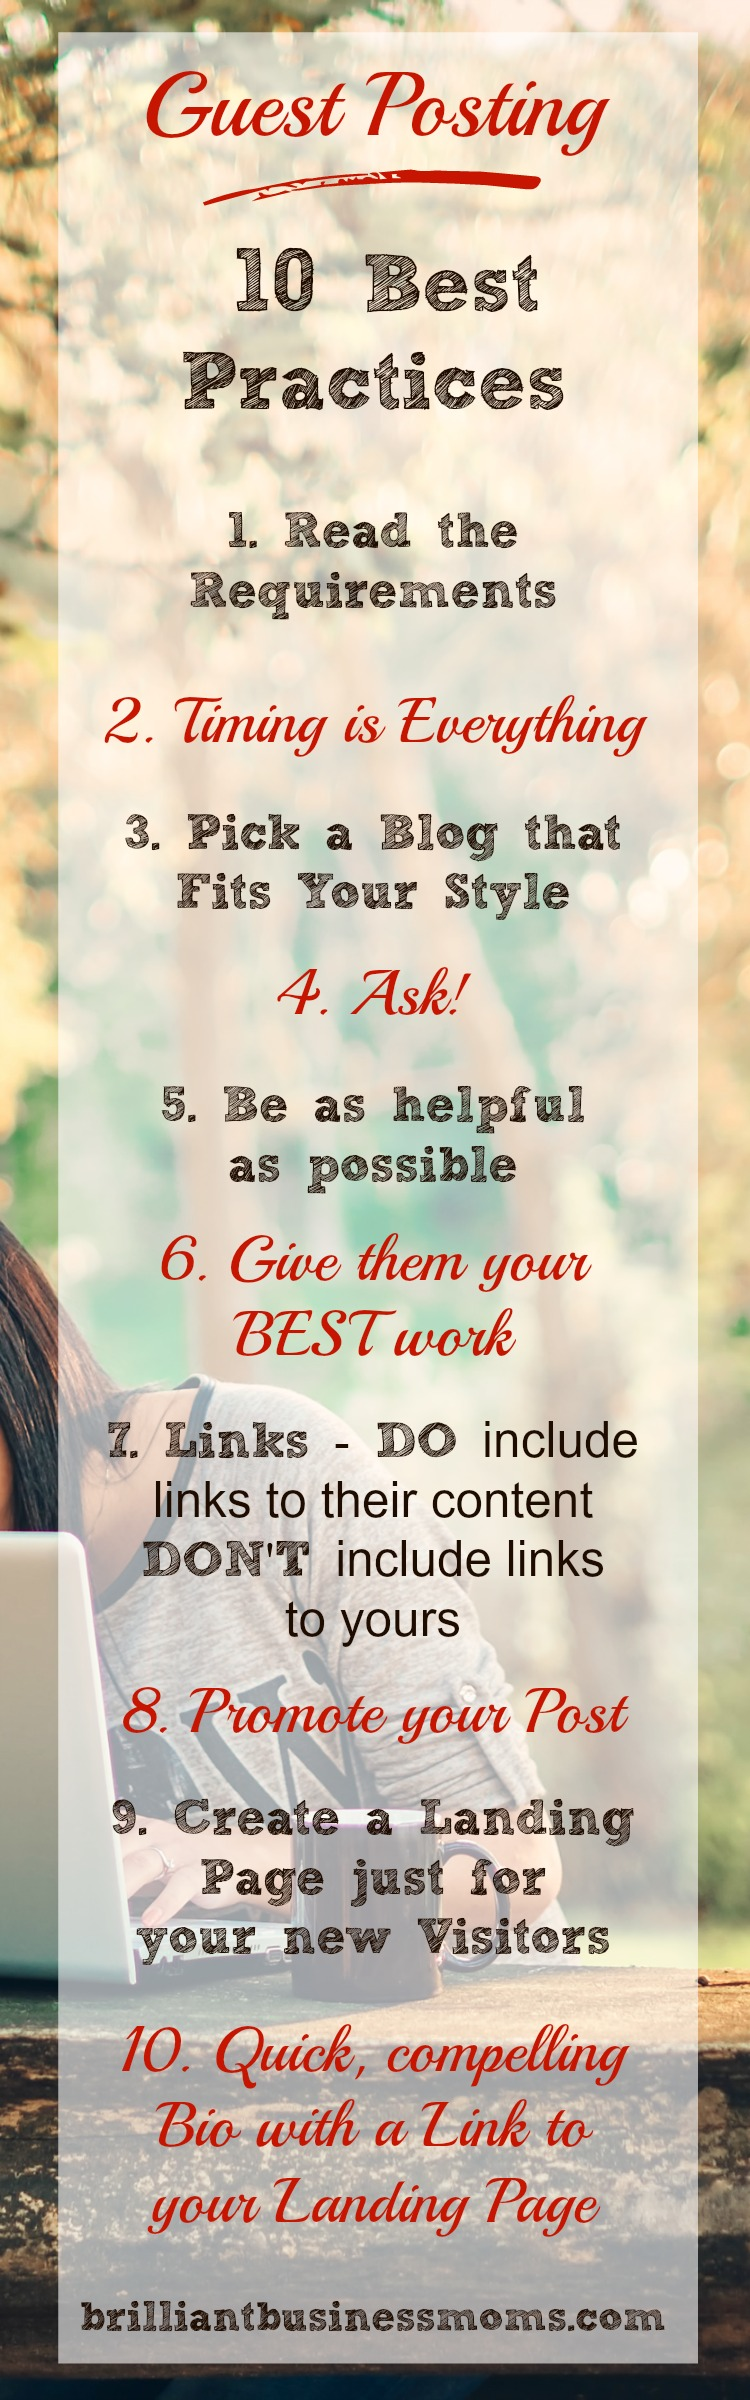 Guest Posting 10 Tips for Doing it Well and Making the Most of the Opportunity #bloggingadvice #guestpost